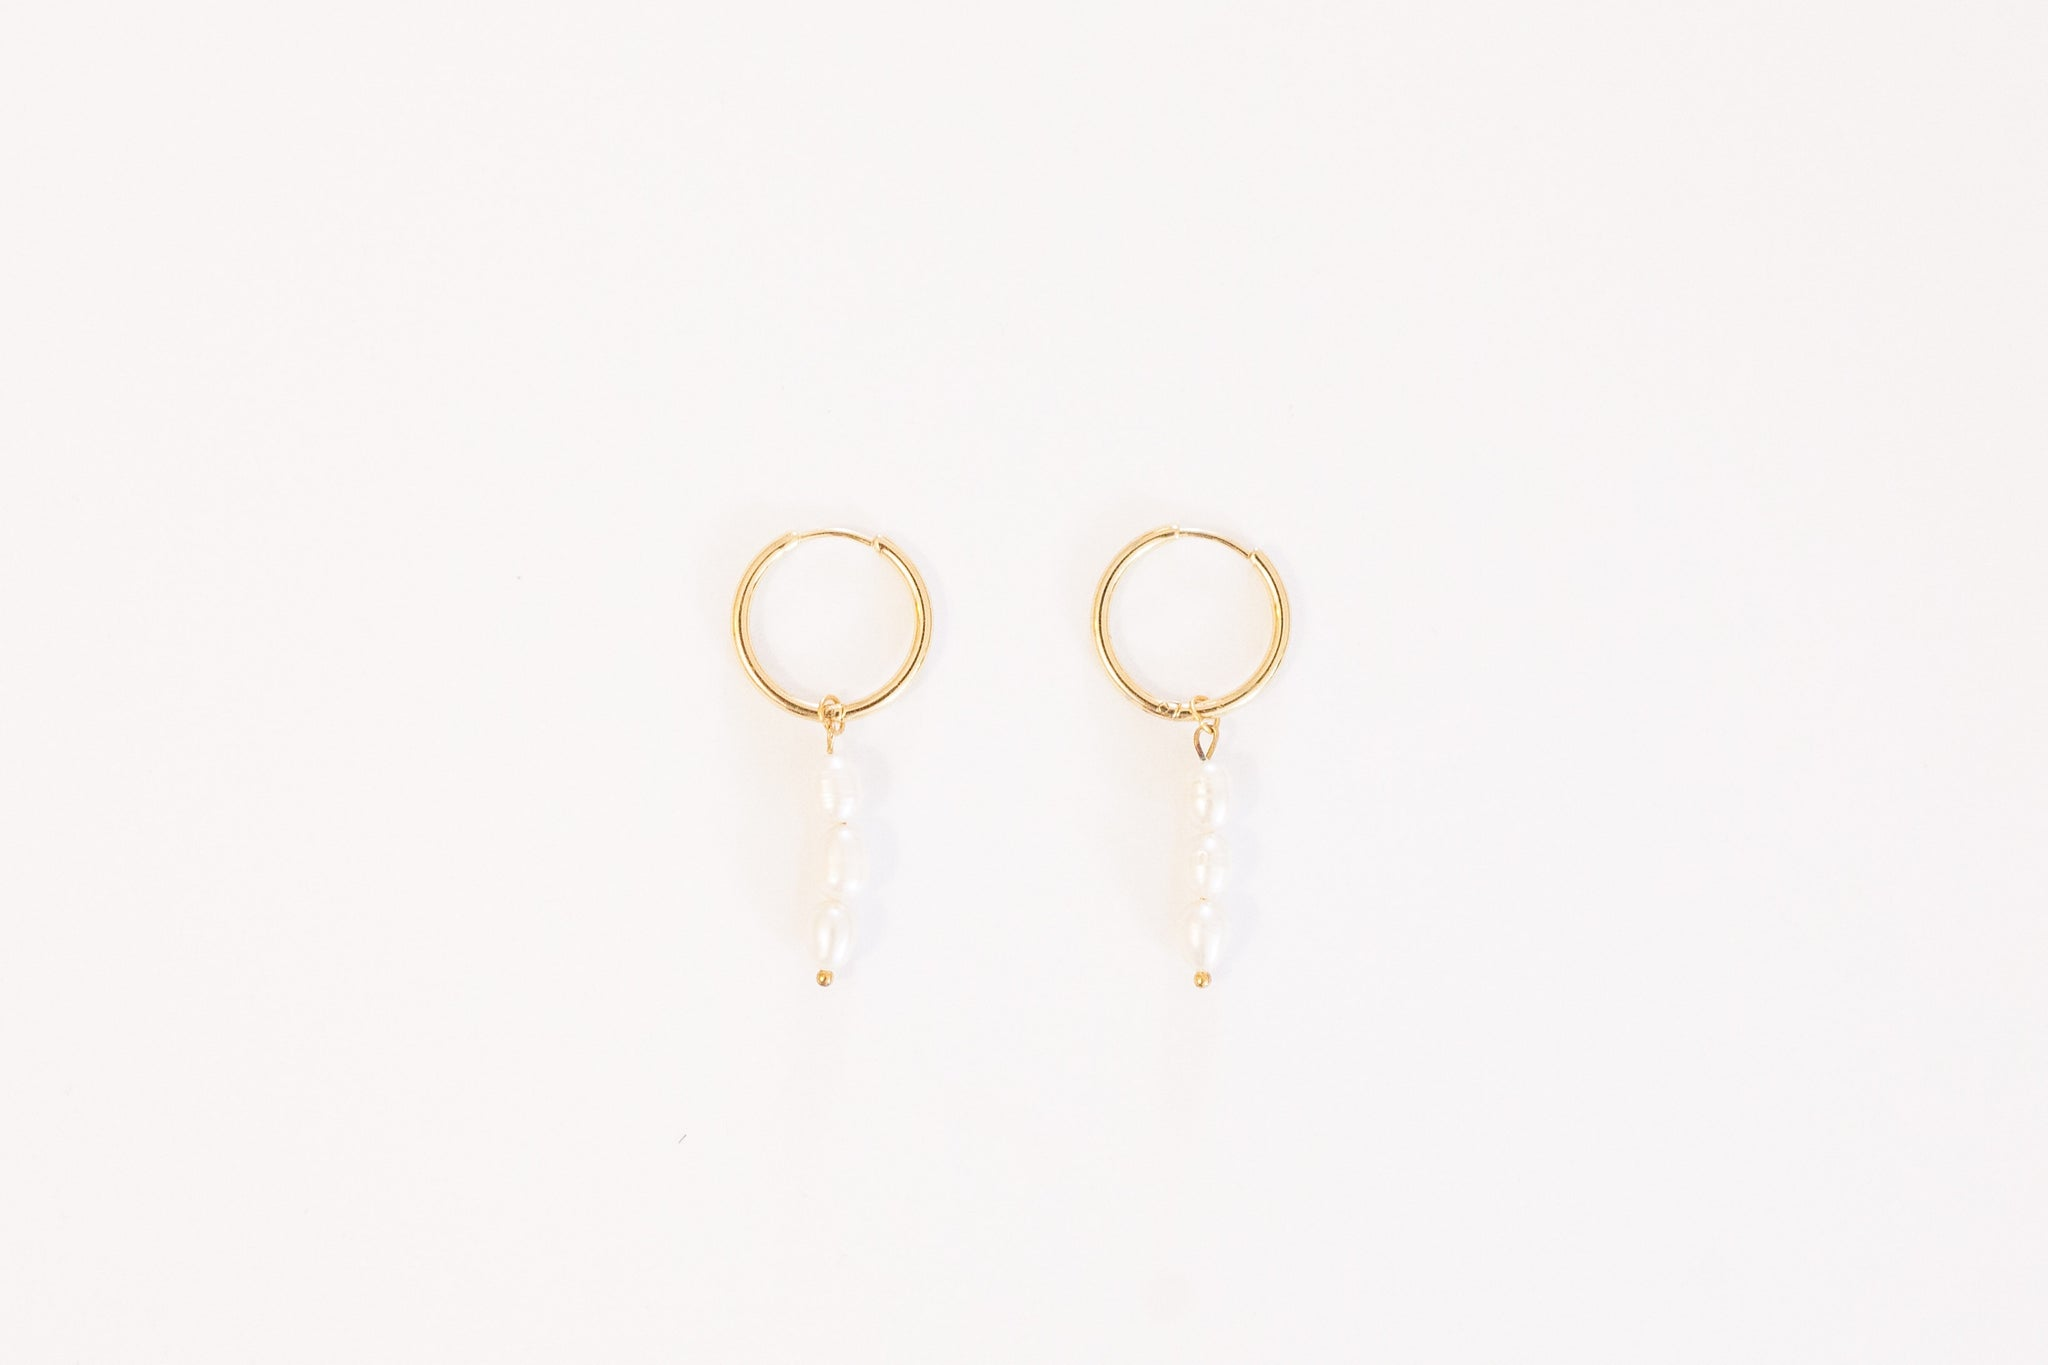 pearl earrings on white background